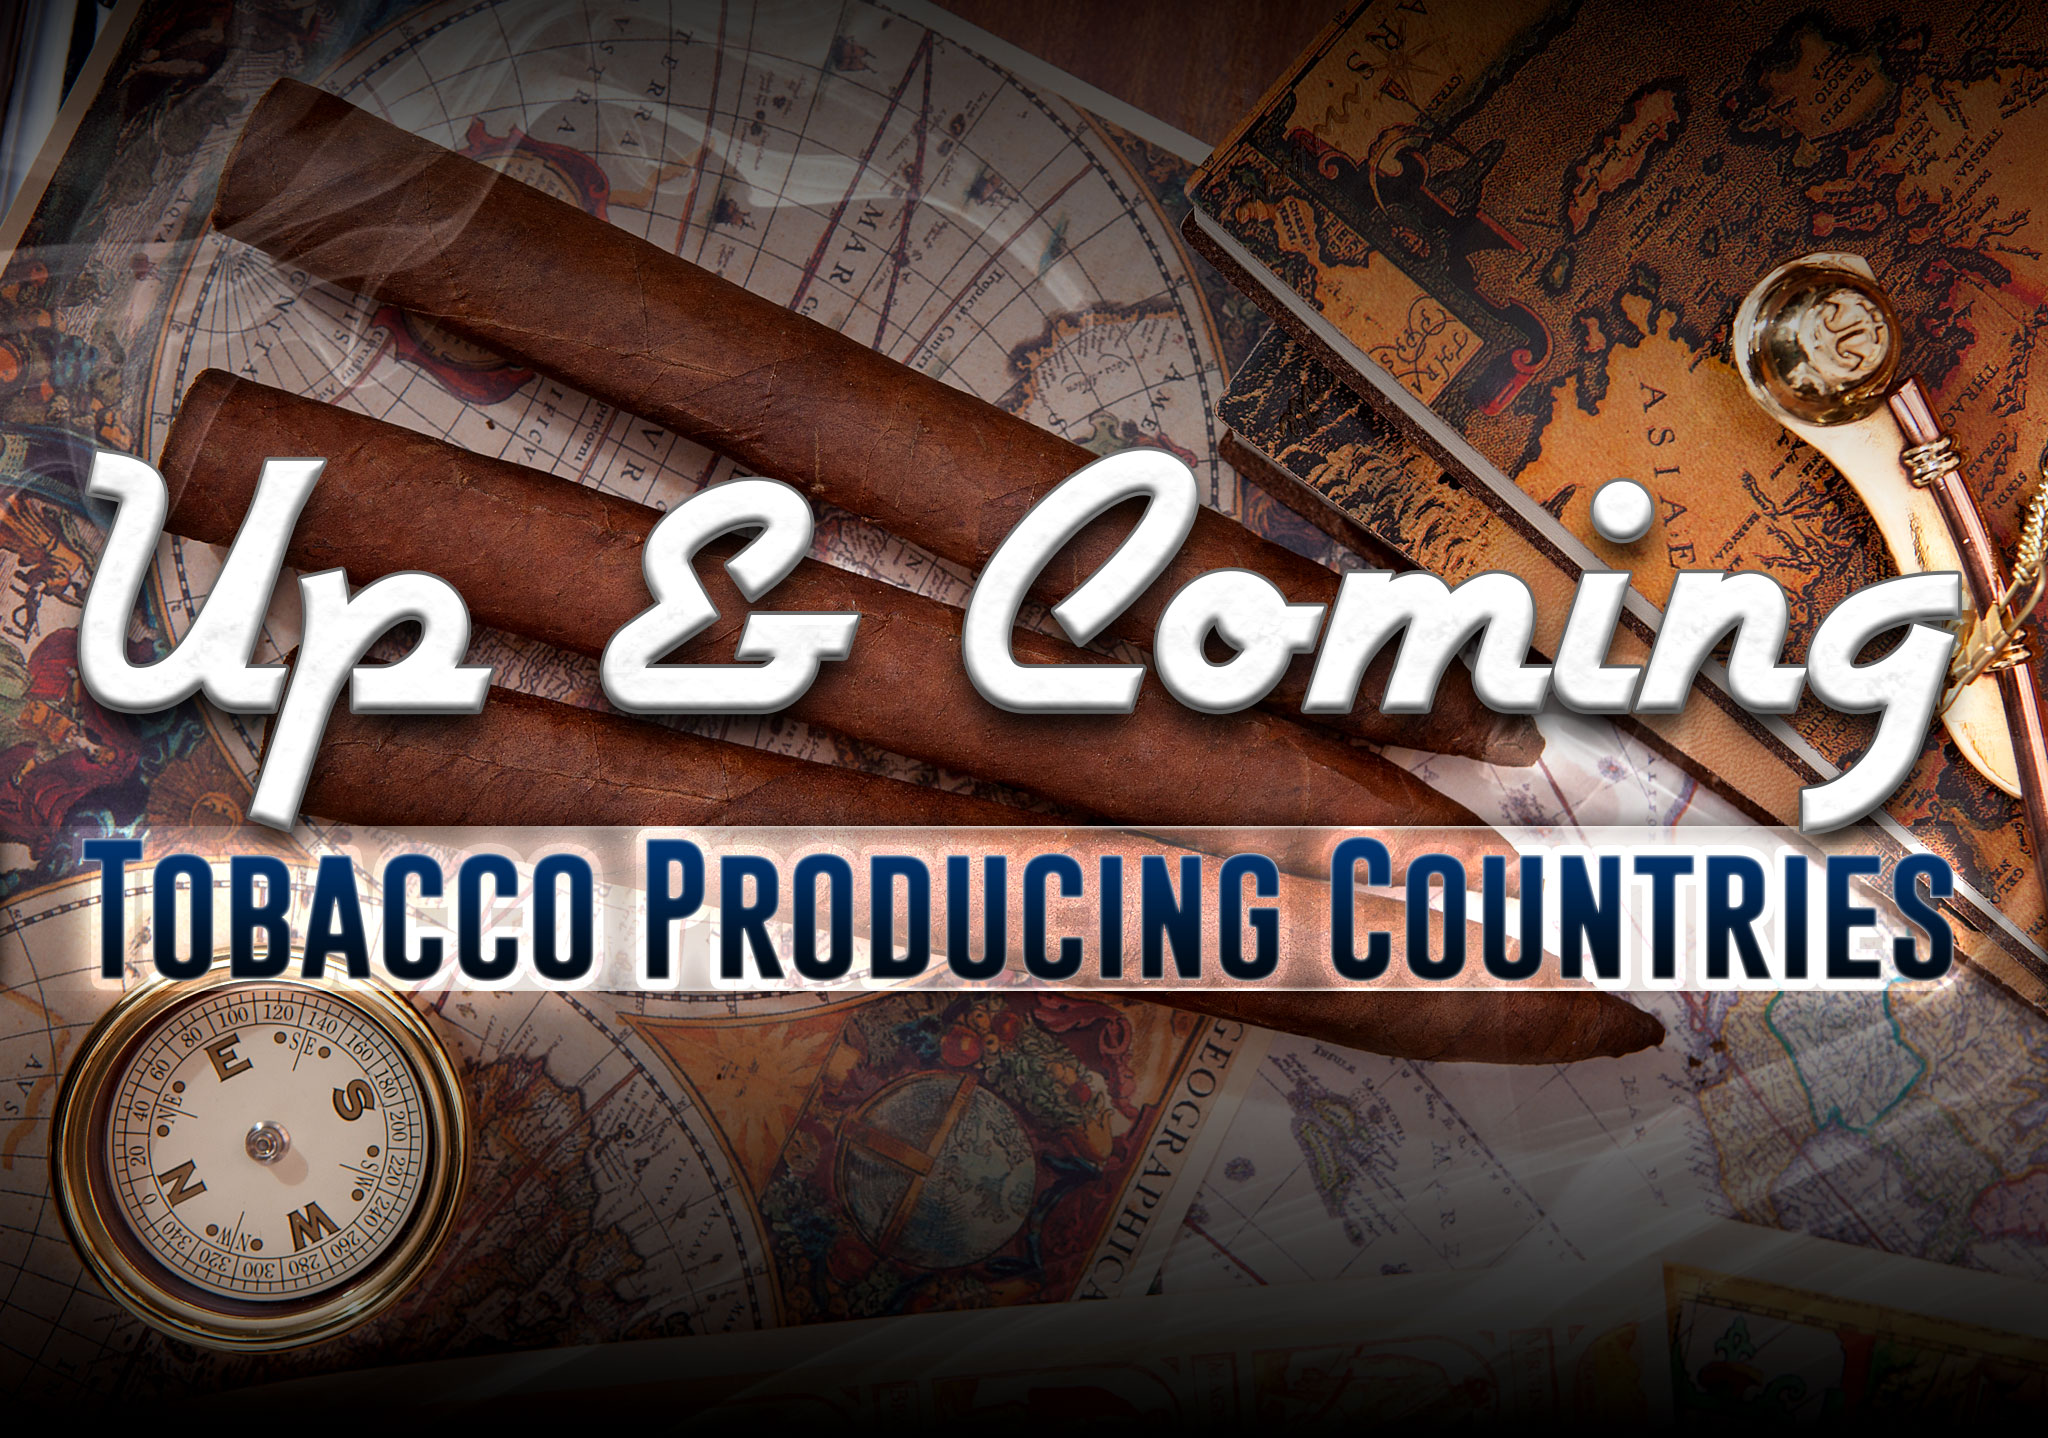 Up and Coming Cigar Tobacco Countries